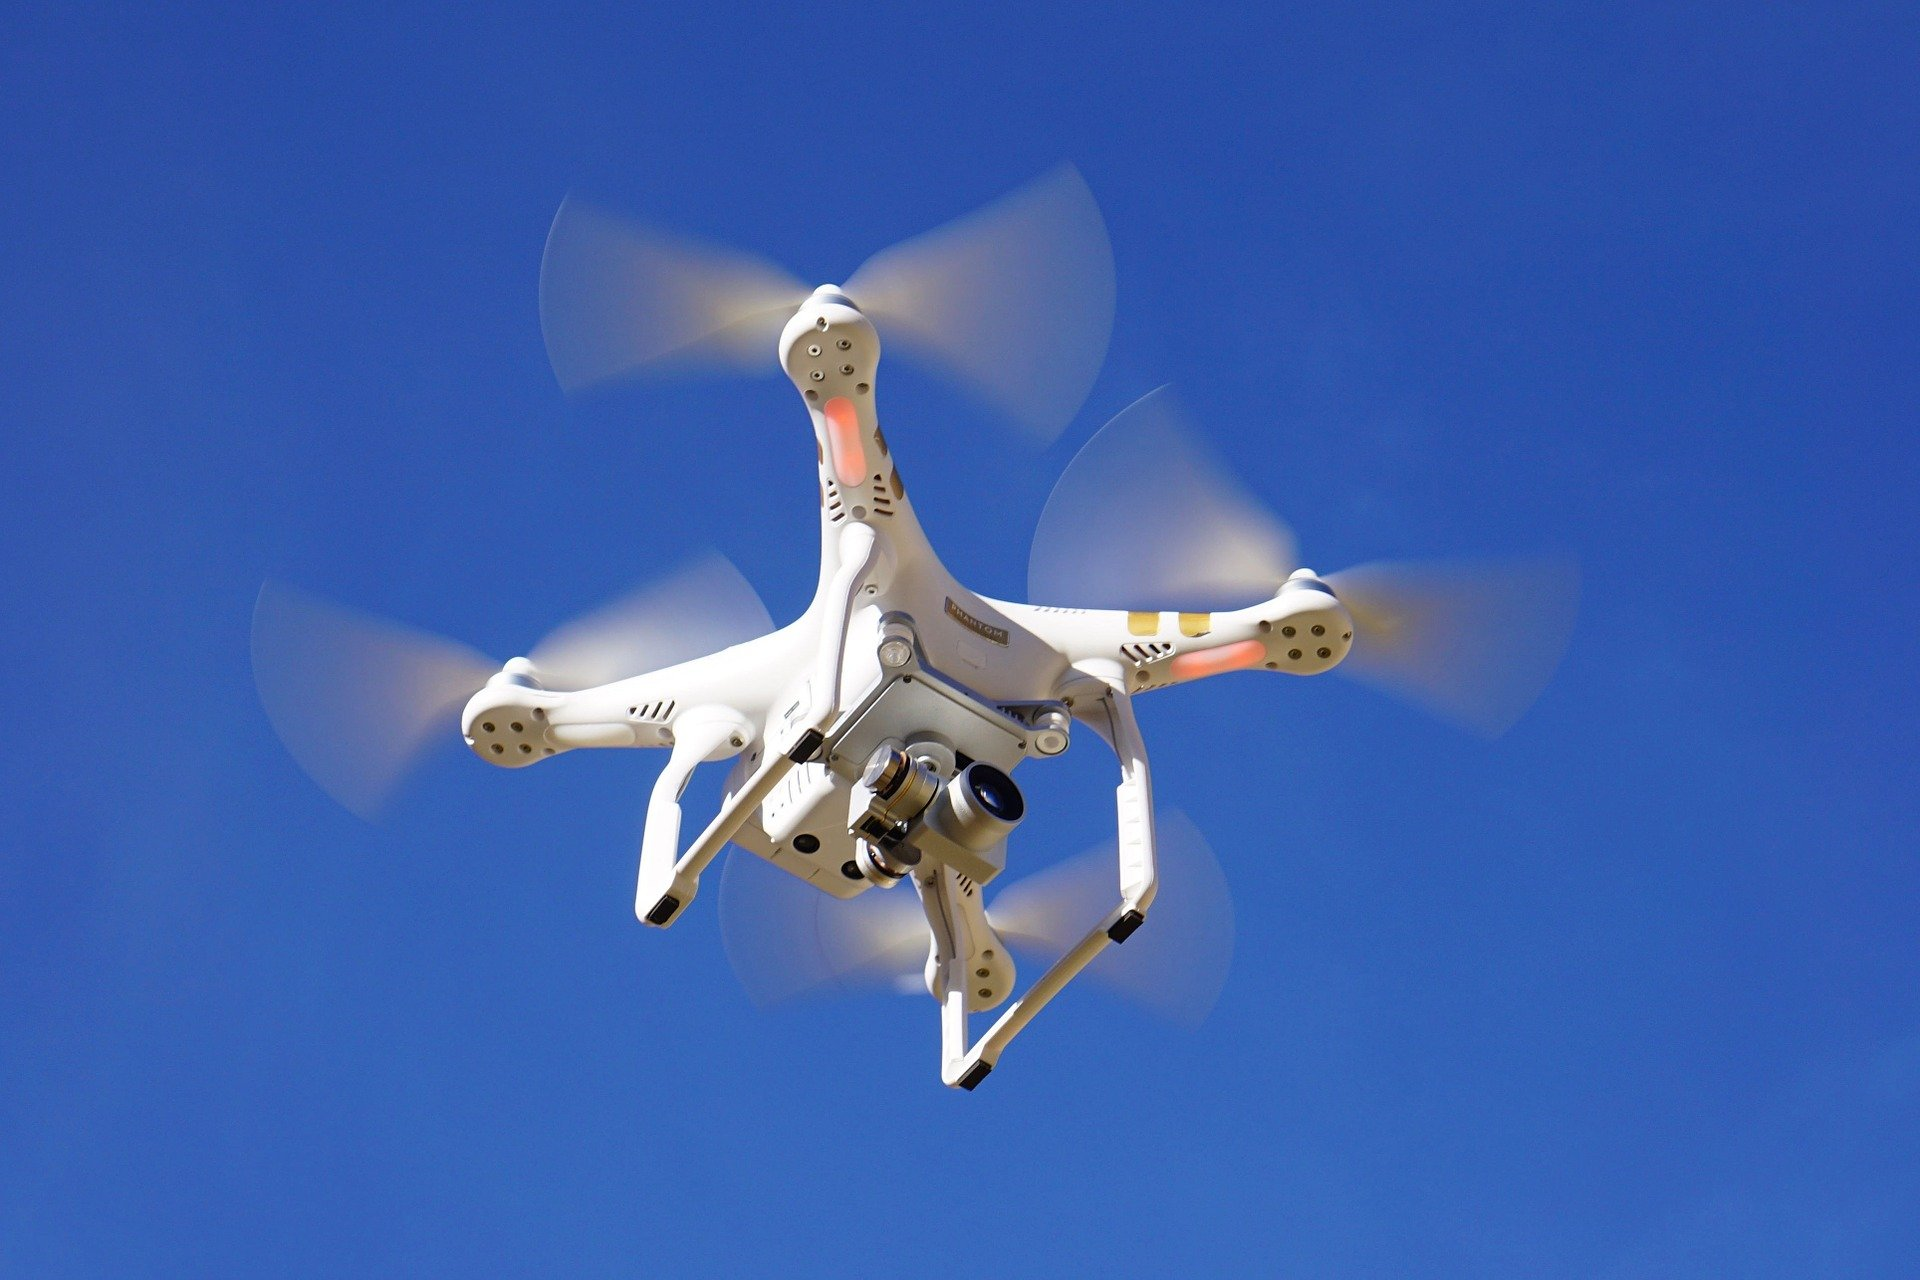 Uses of Drone Technology That Might Interest You